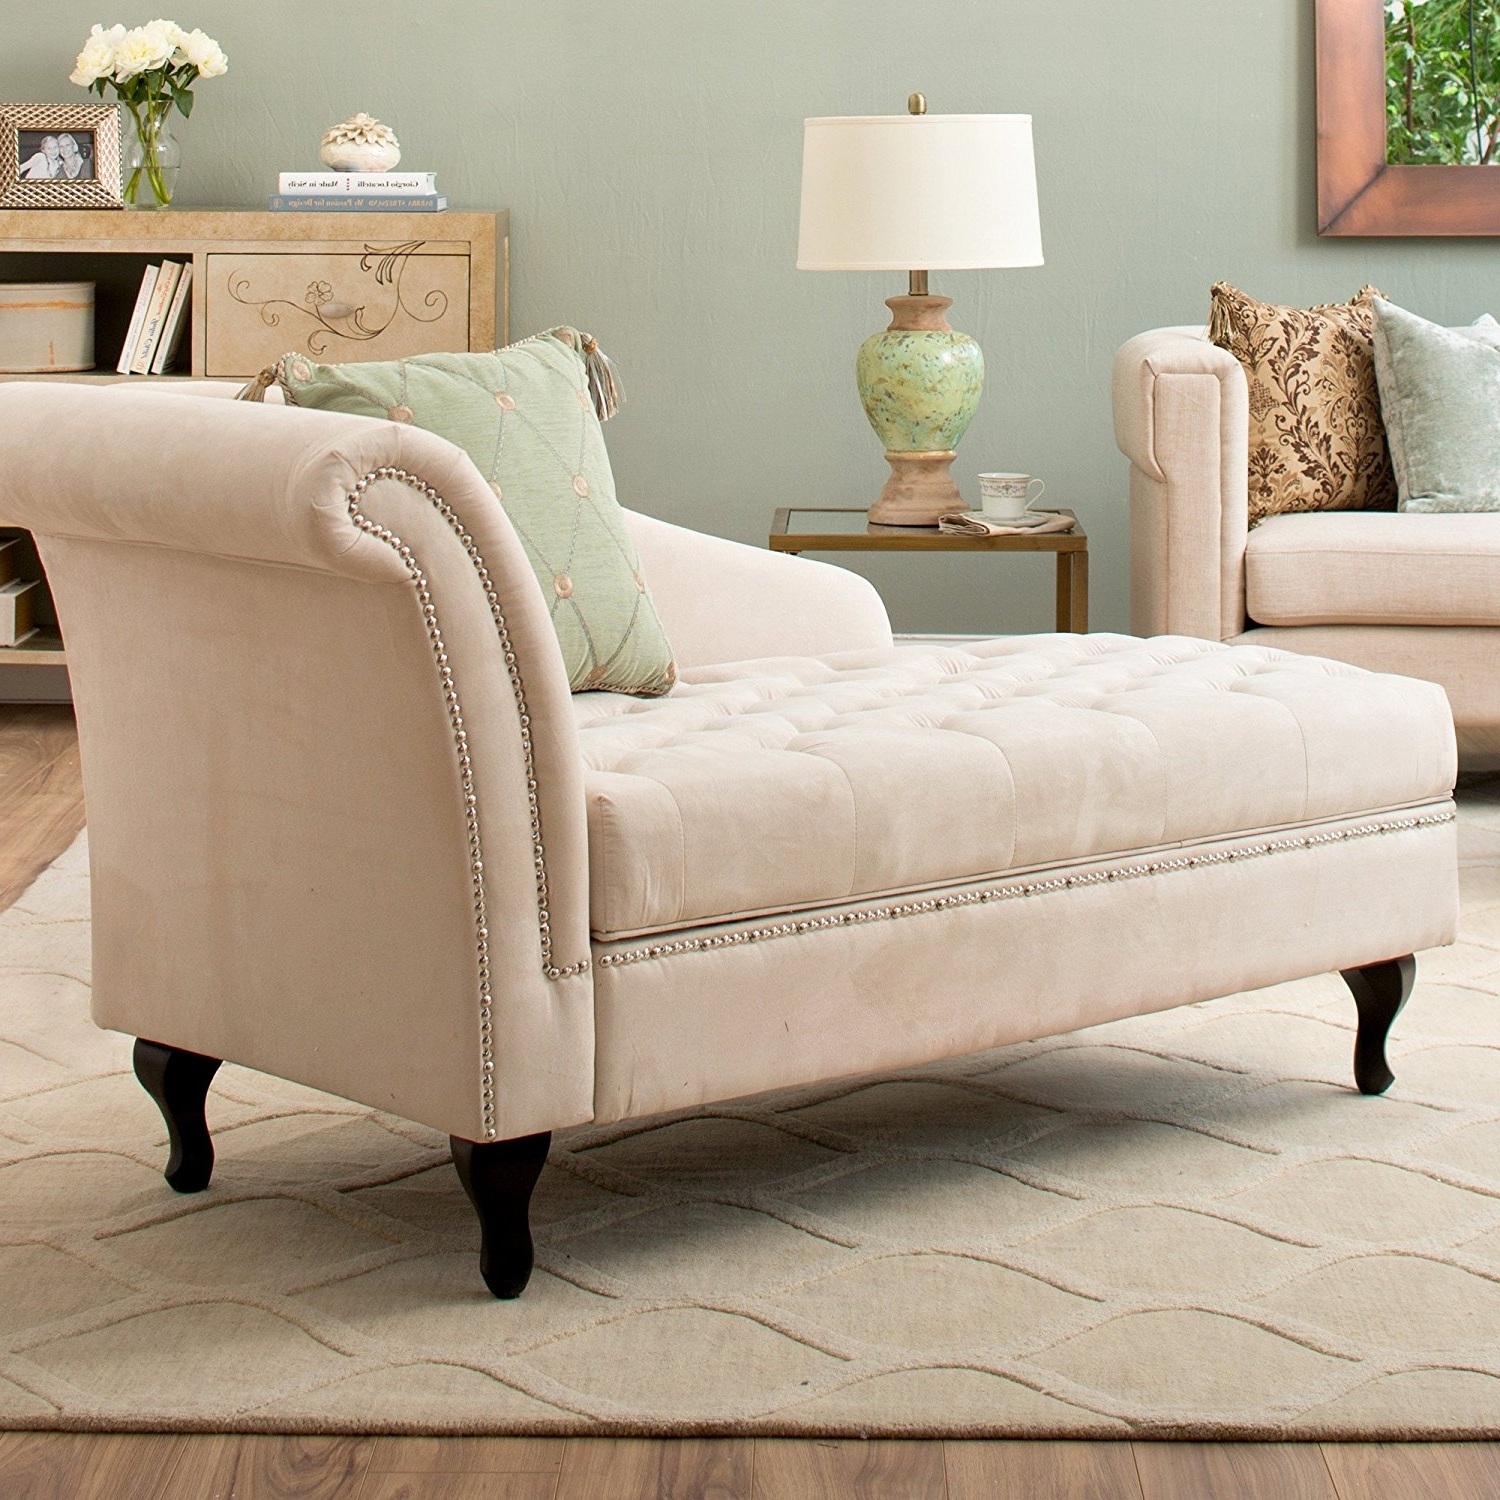 chaise chair for bedroom staples osgood in chic reading corner is filled